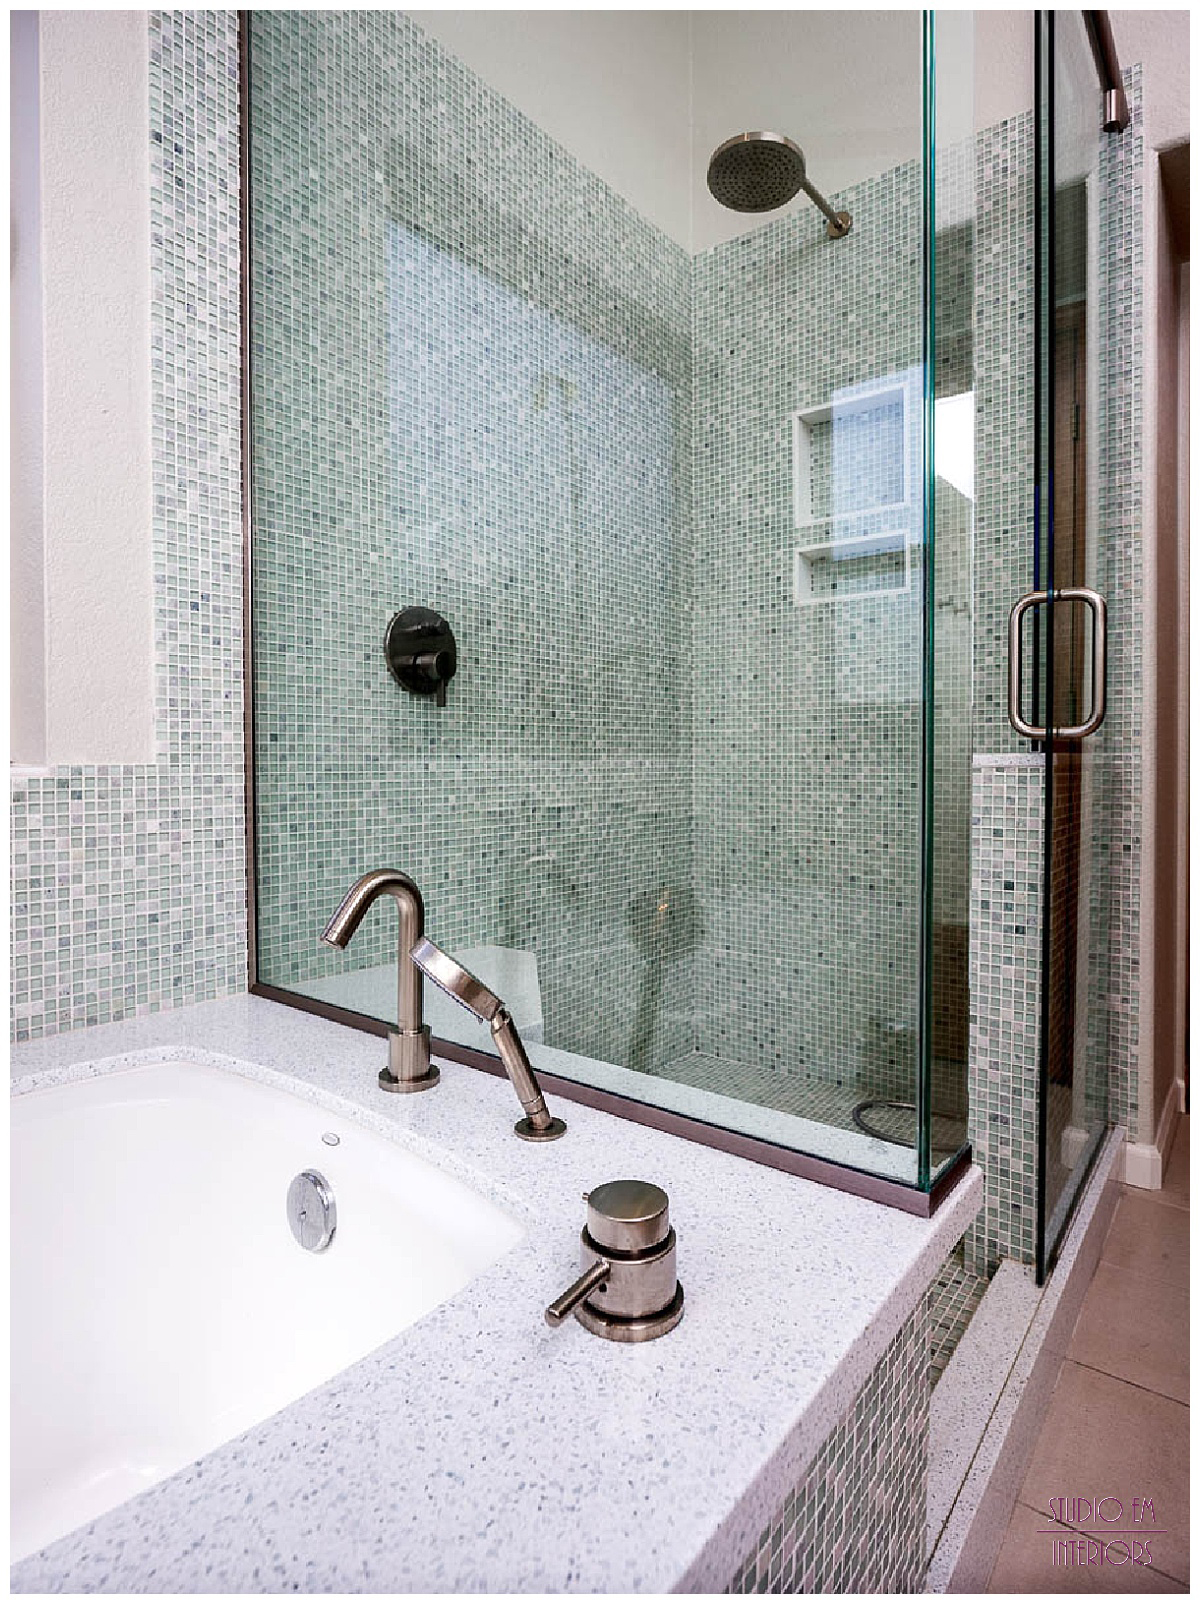 Chandler Spa Suite - Shower and Tub Detail - Studio Em Interiors